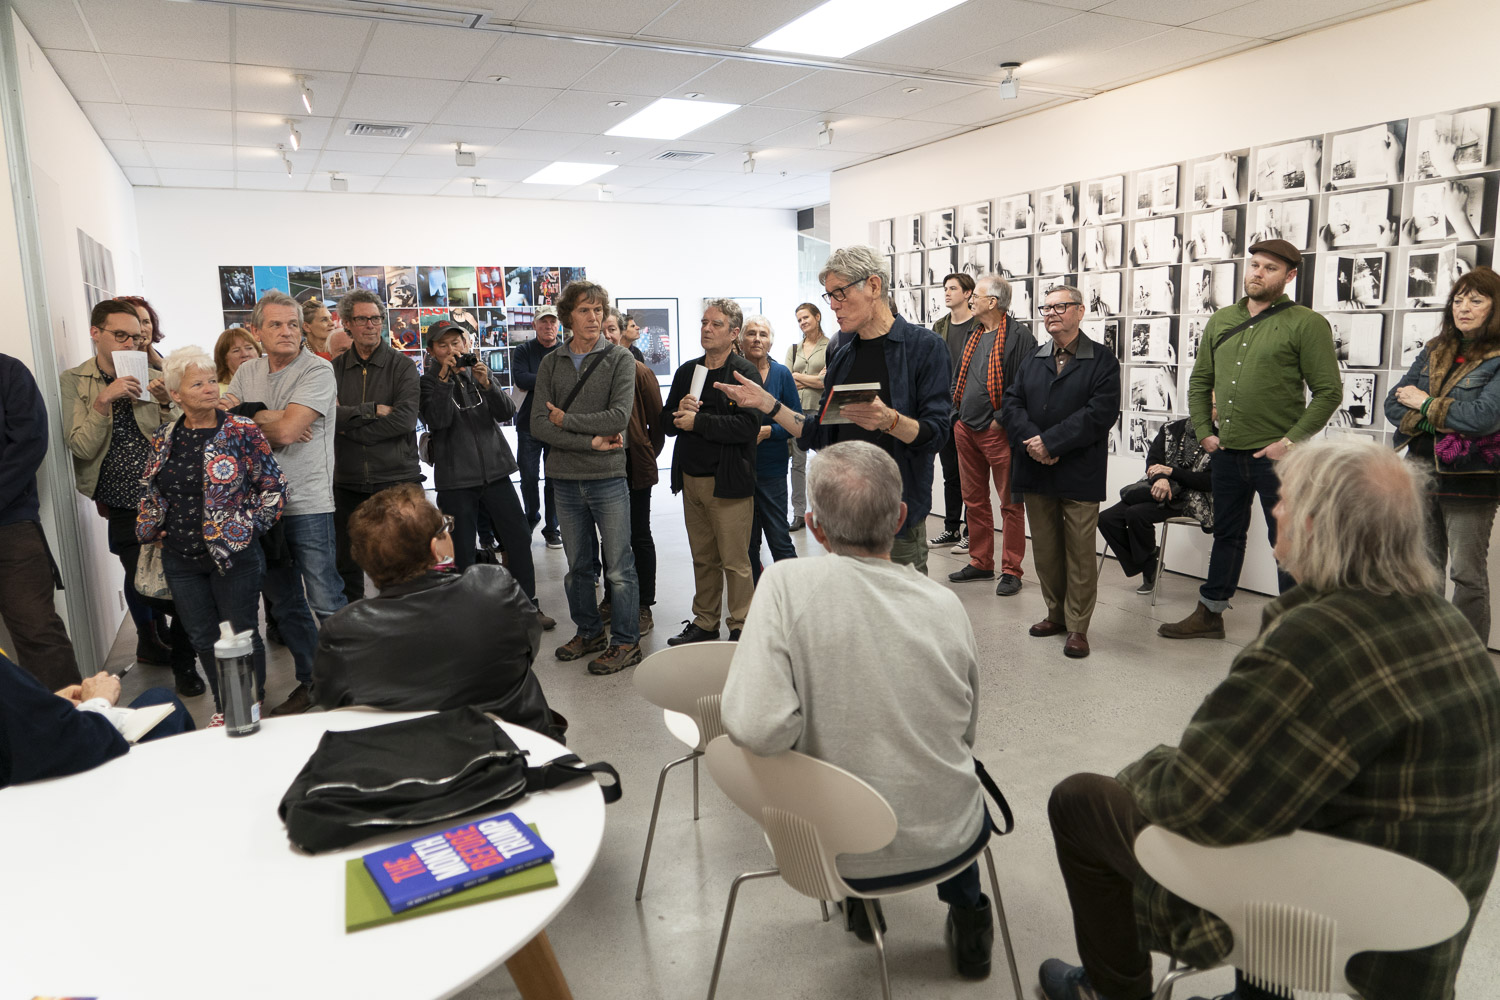 """Harvey Benge and Ron Brownson in conversation at """"Aide Memoire and other Stories"""", Northart, June 2018"""